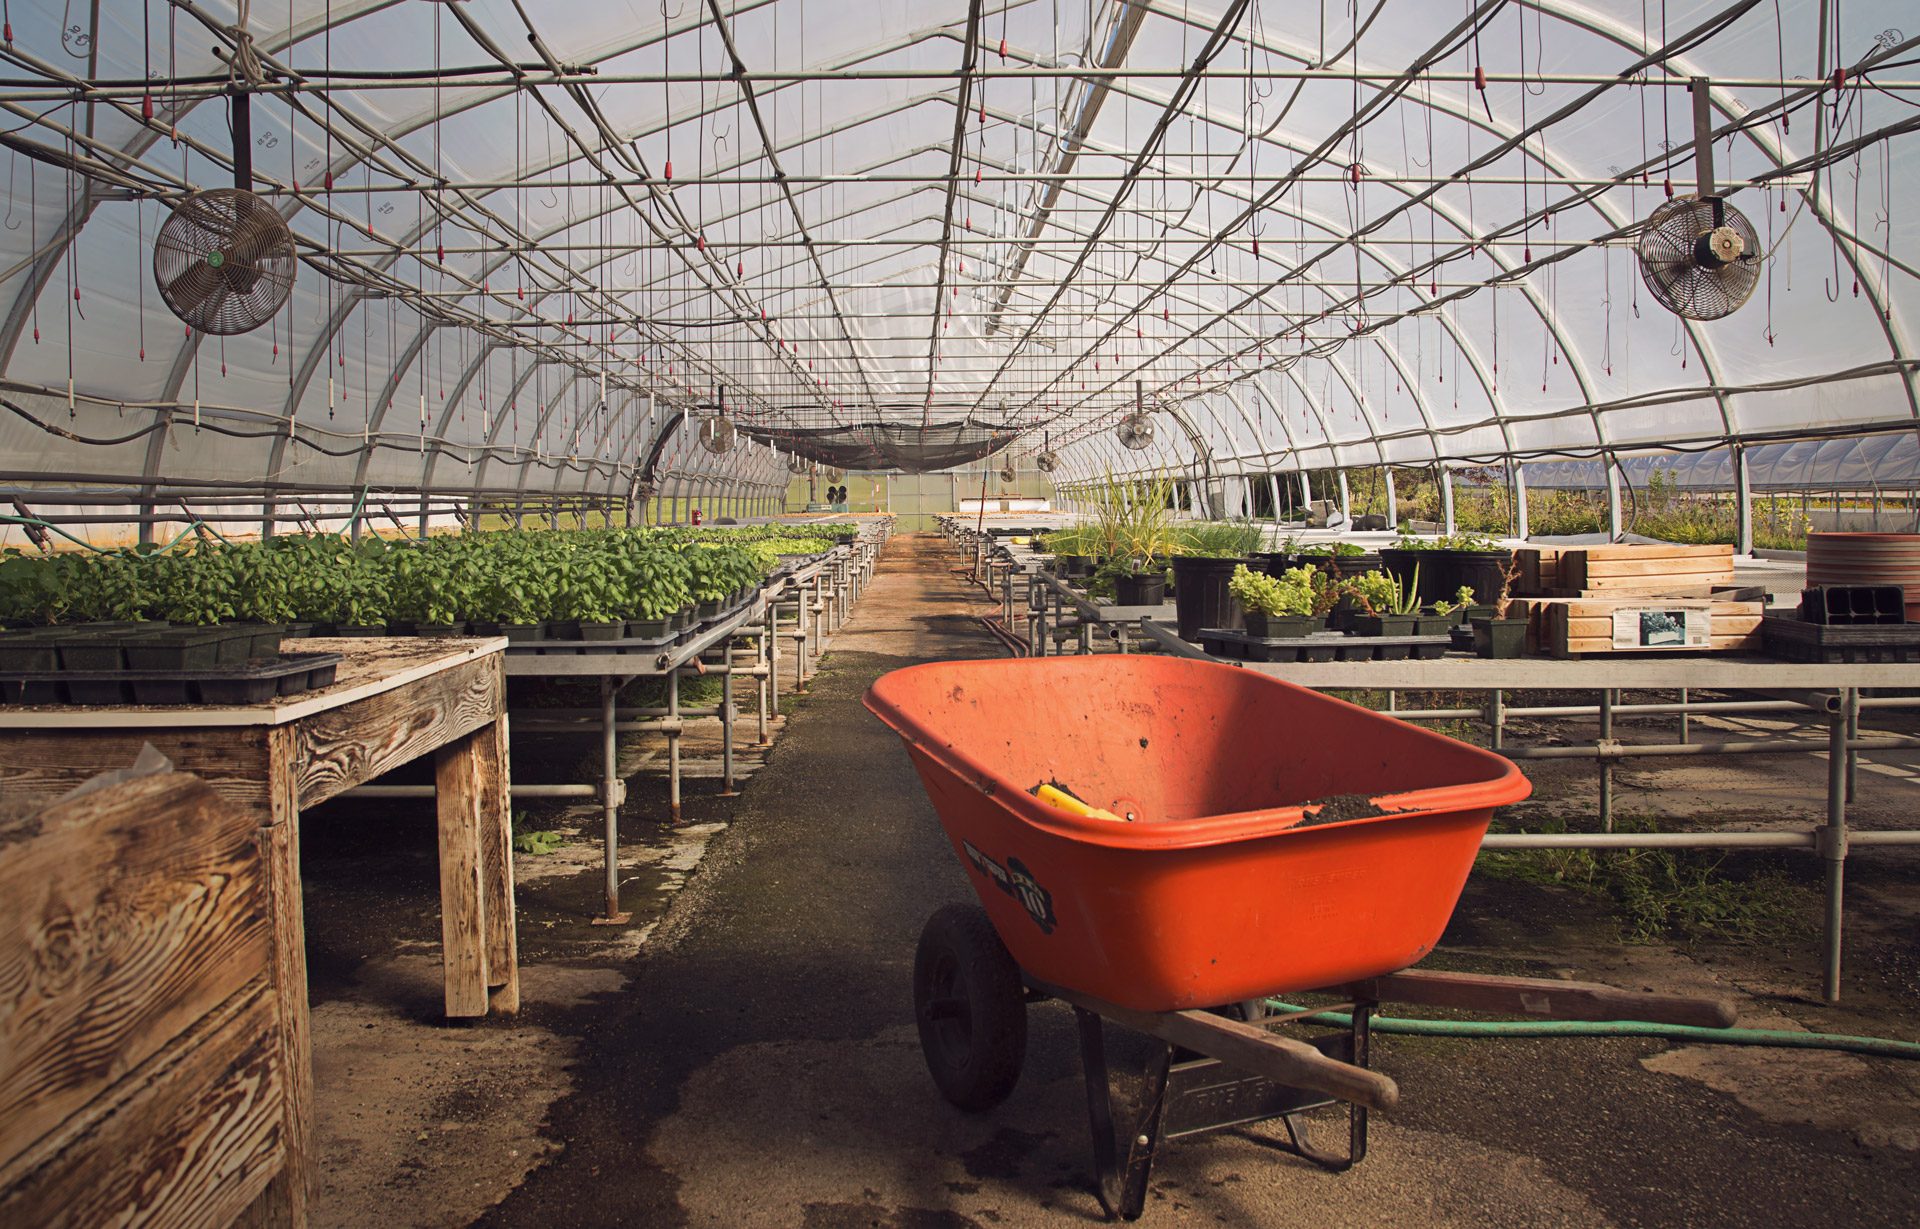 orange-wheelbarrow-in-a-greenhouse-mackay-gardens-unity-parisleaf.jpg